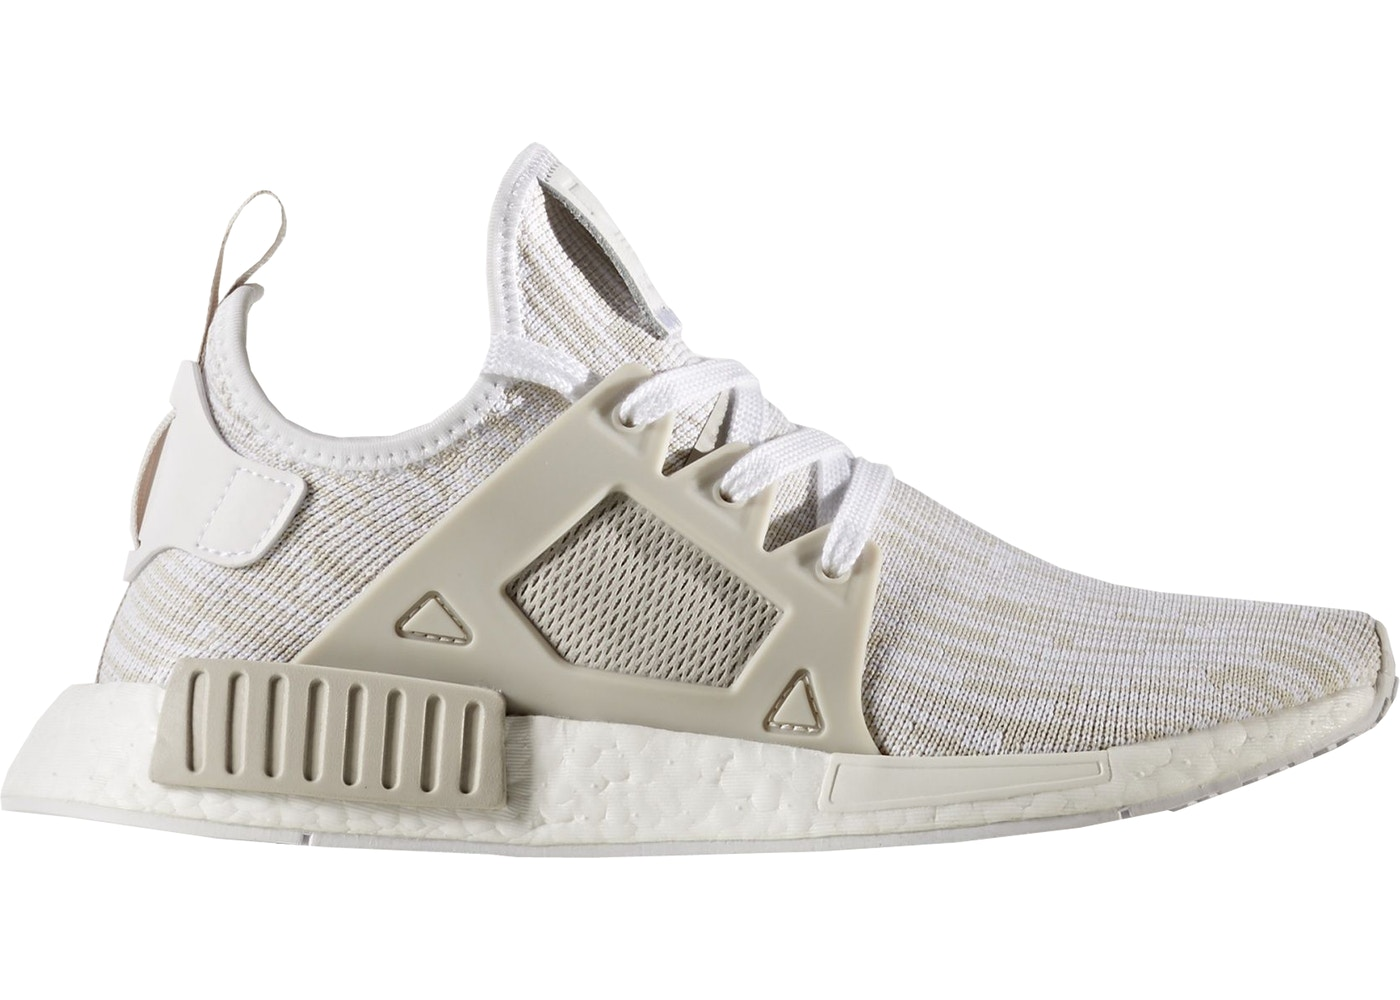 86a8674b1 adidas NMD XR1 Shoes - Release Date